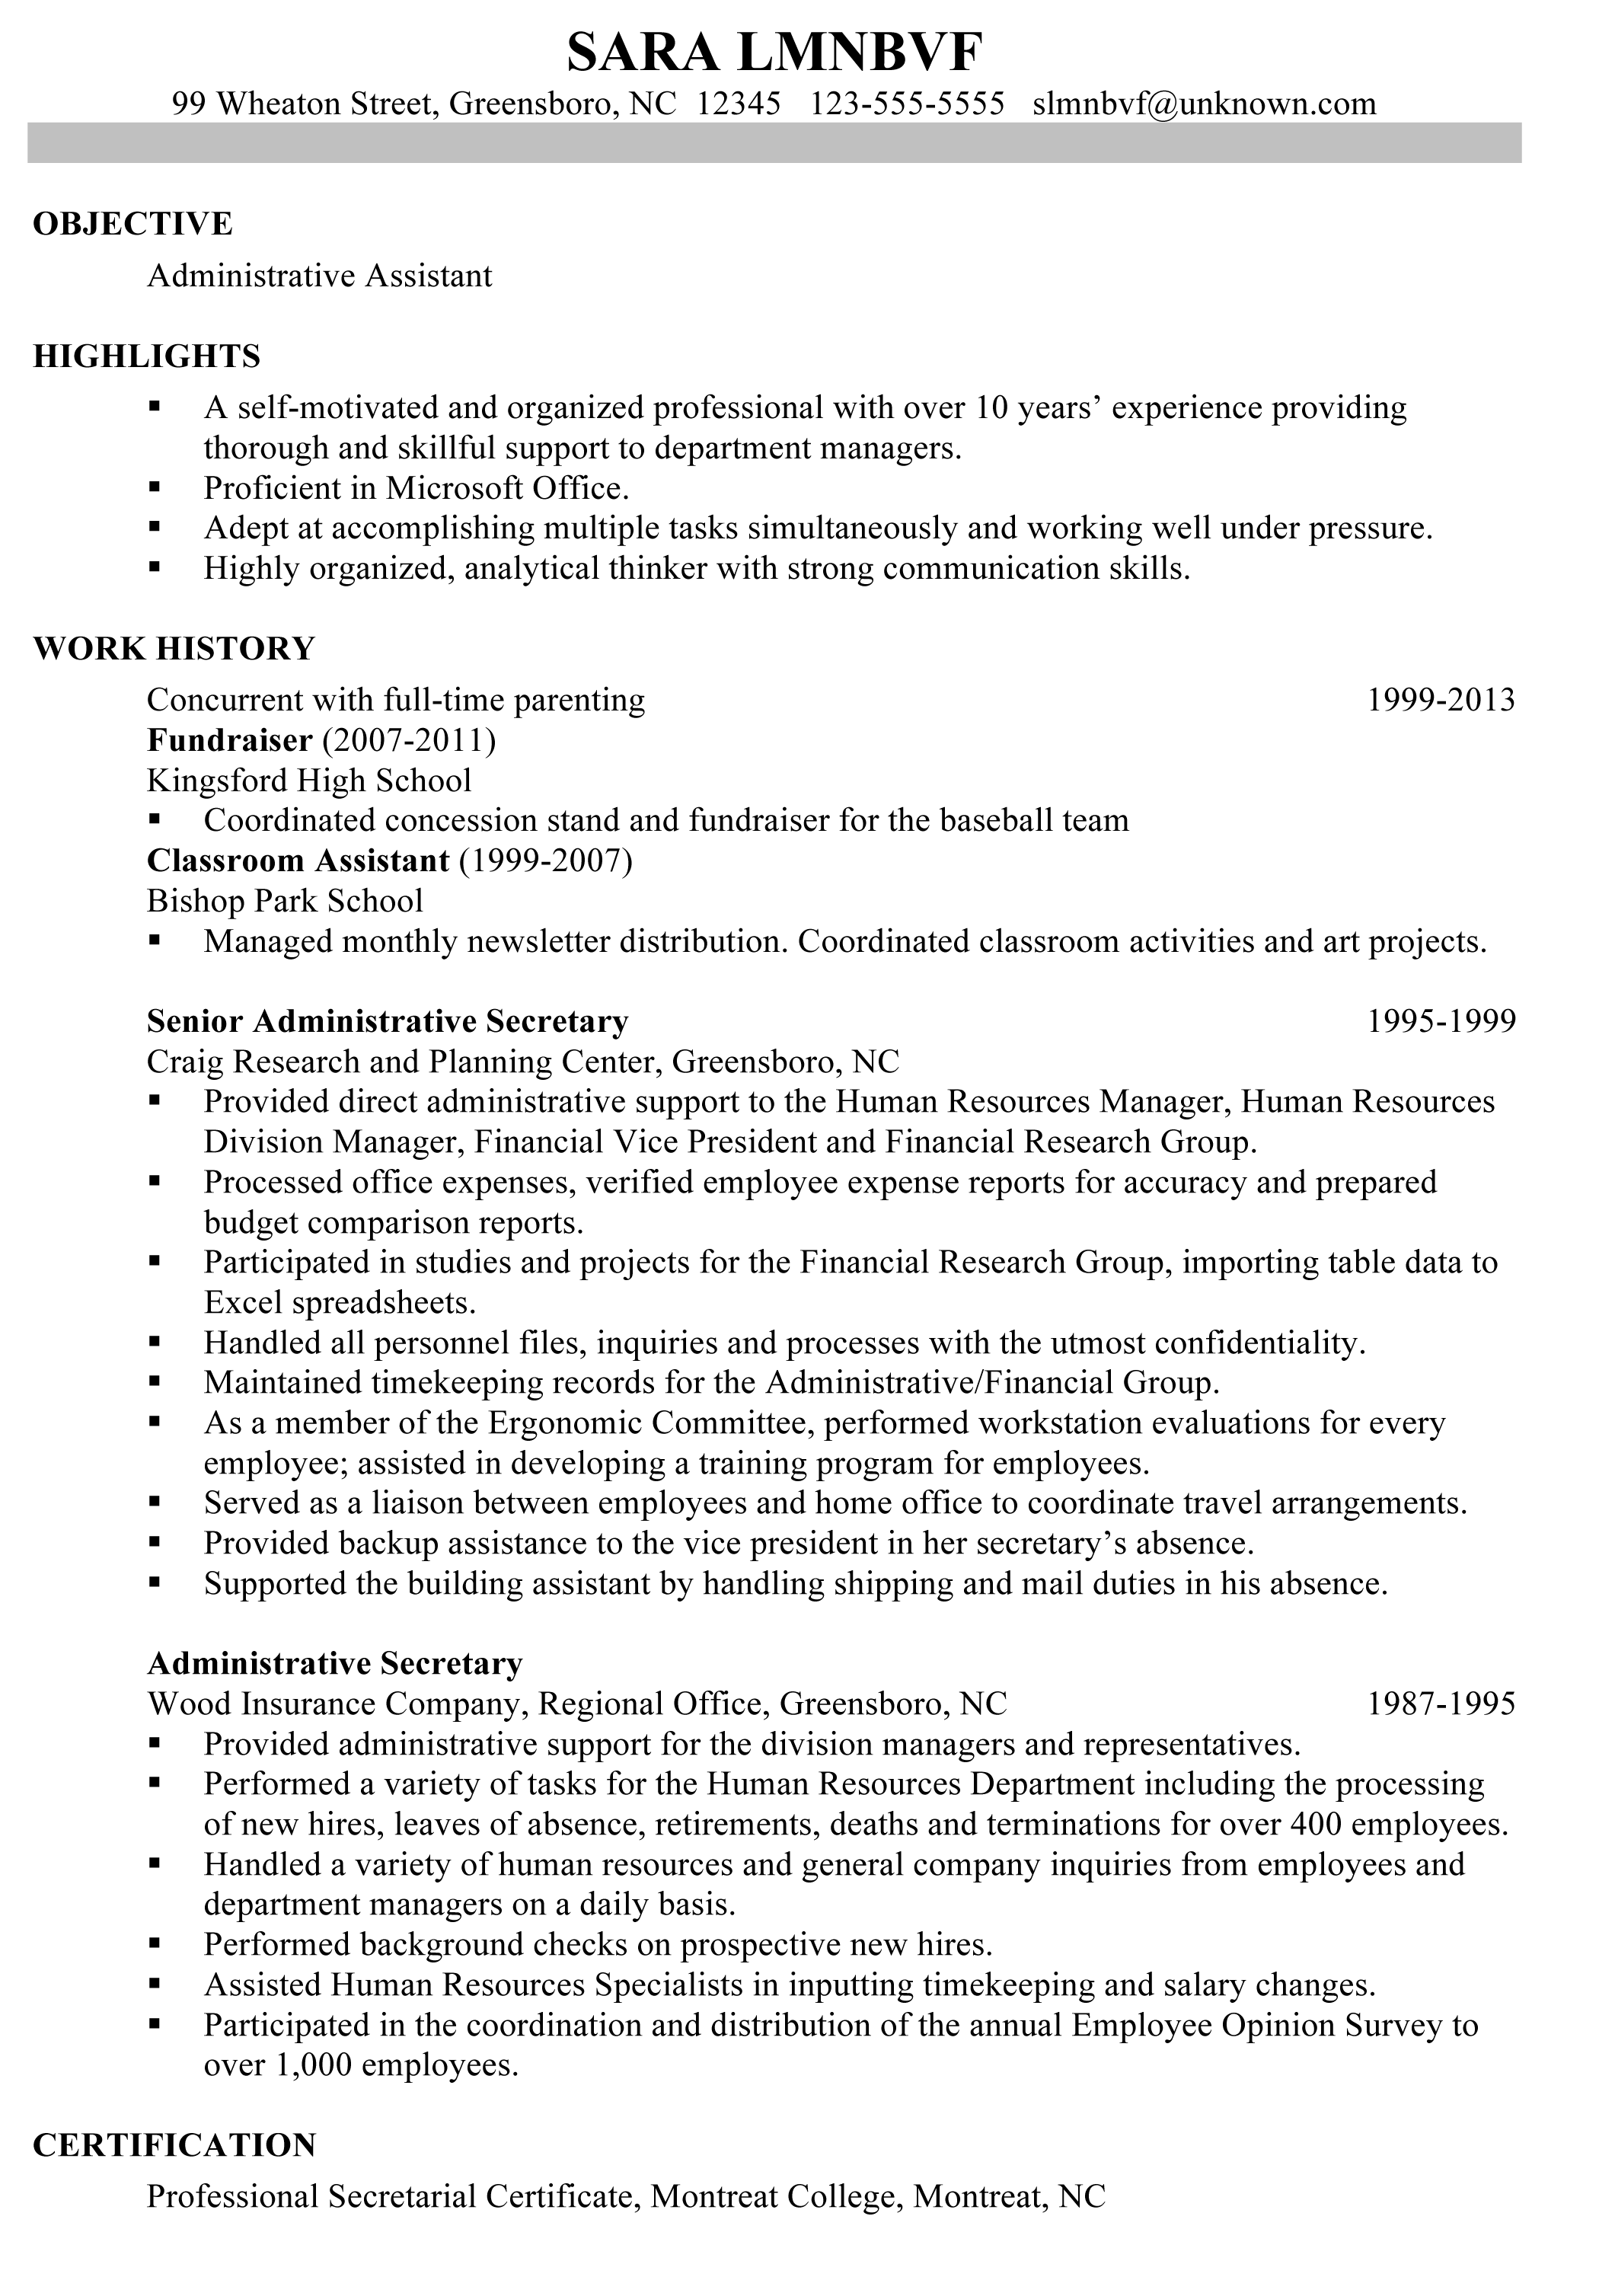 Sample Chronological Resume Chronological Resume Sample Administrative Assistant  Resume